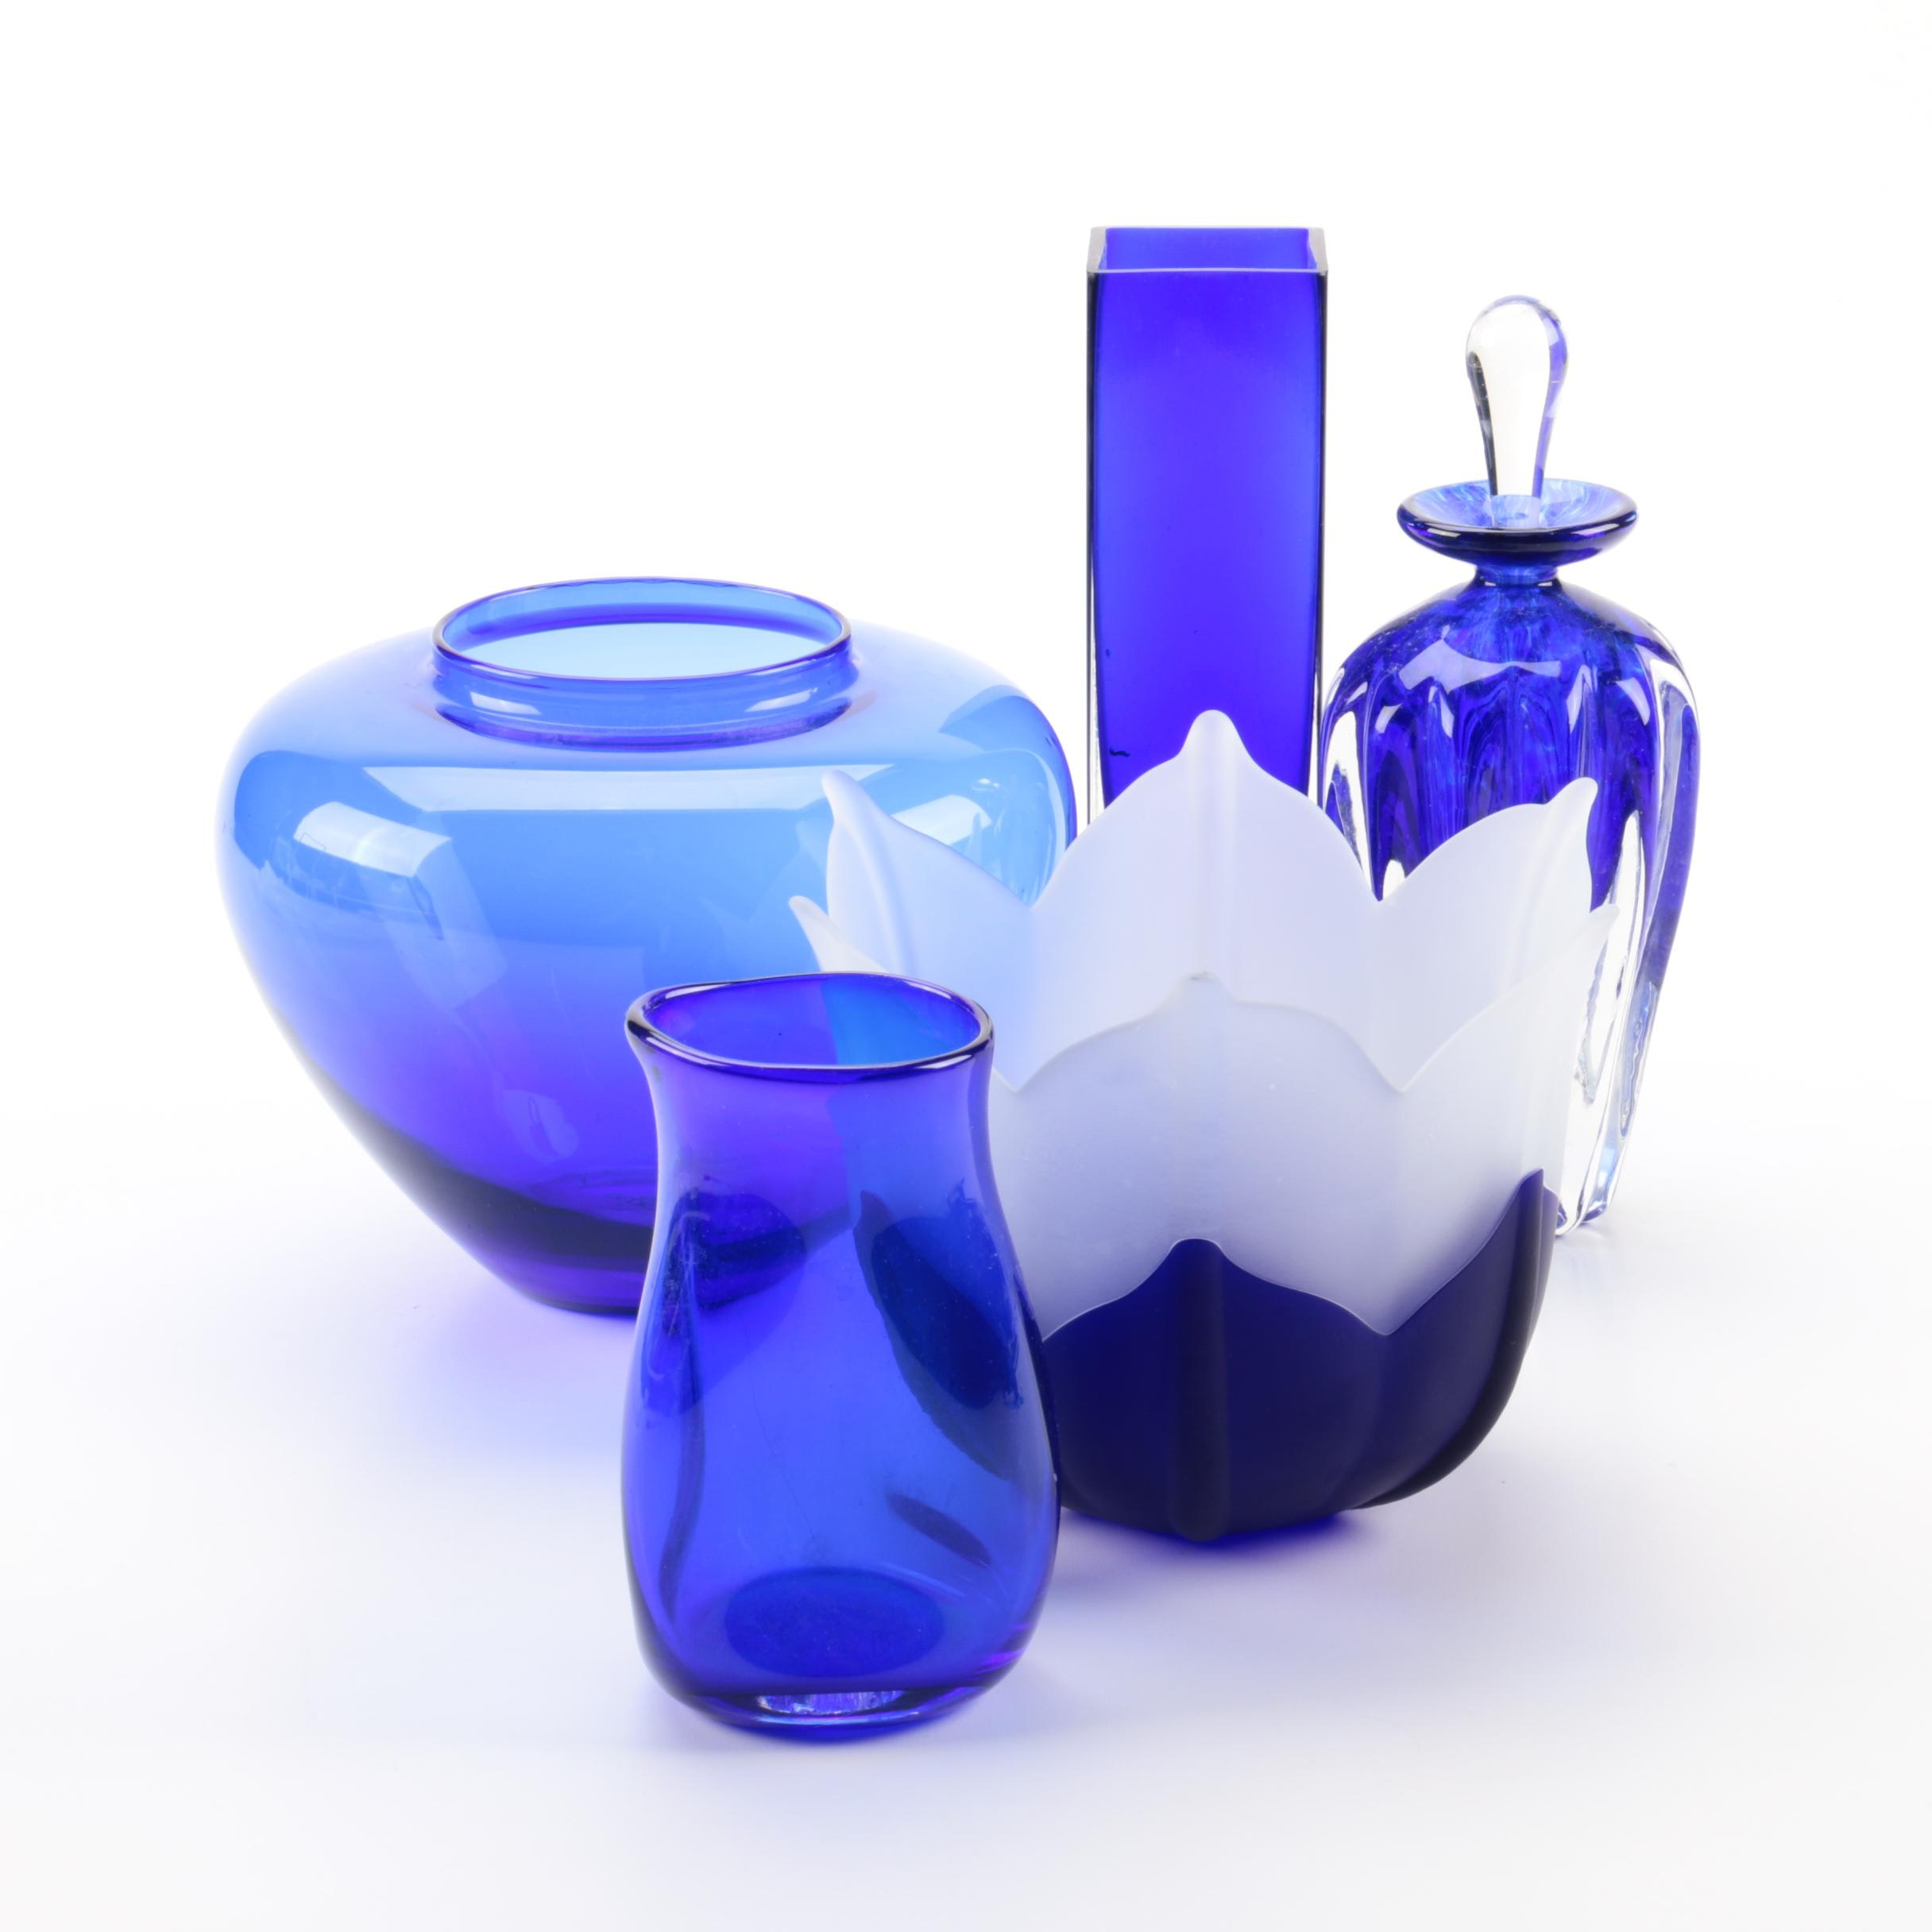 James Carcass Hand Blown Glass Vase with Perfume Bottle